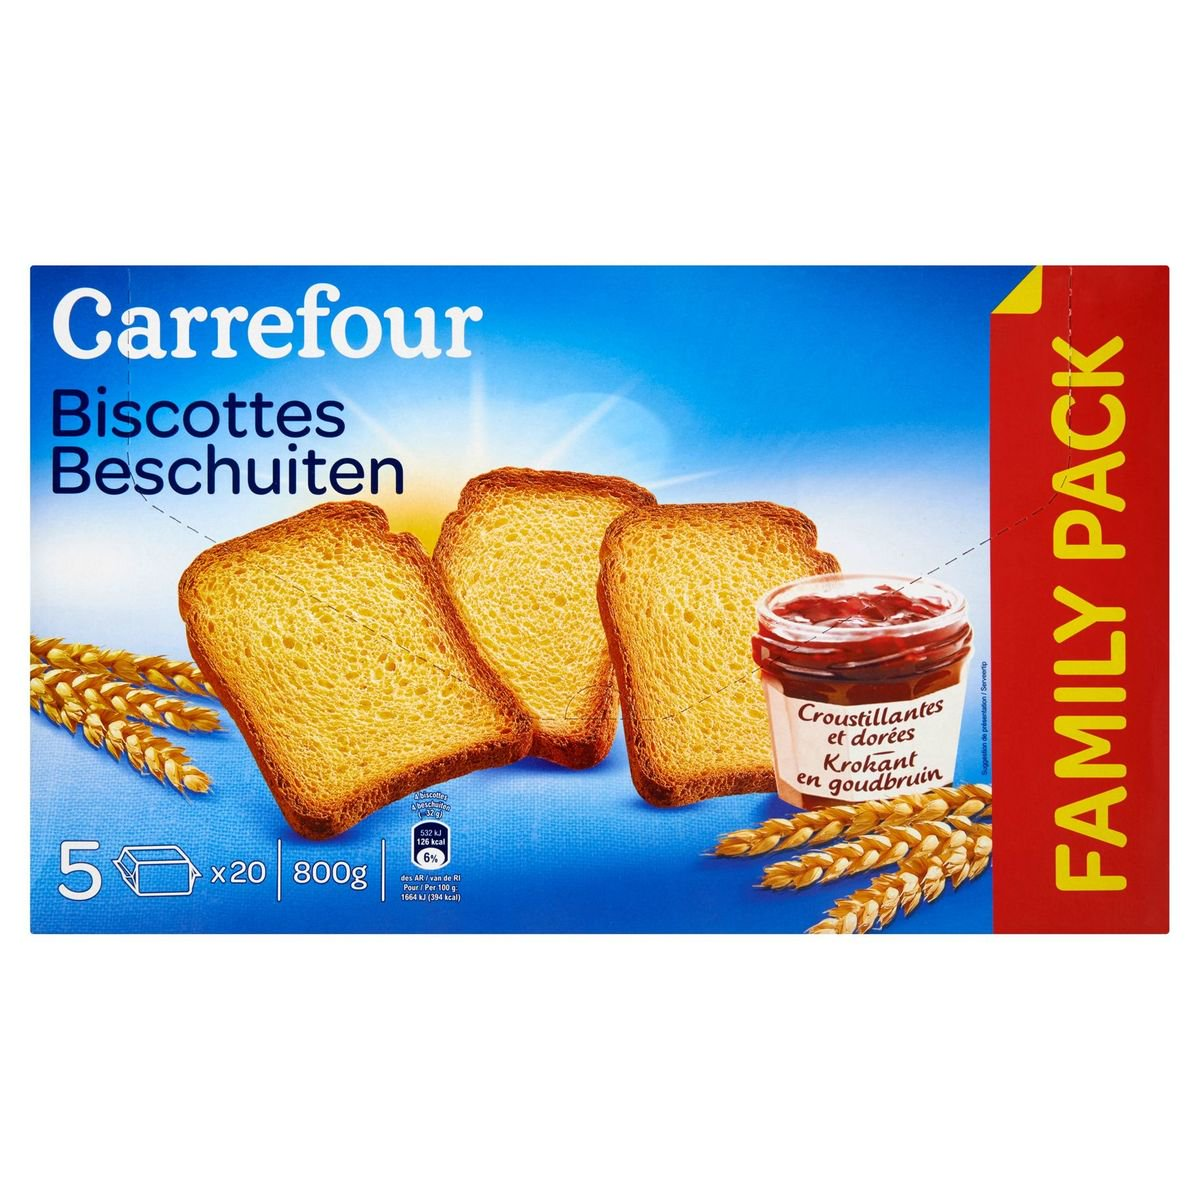 Carrefour Biscottes 800 g